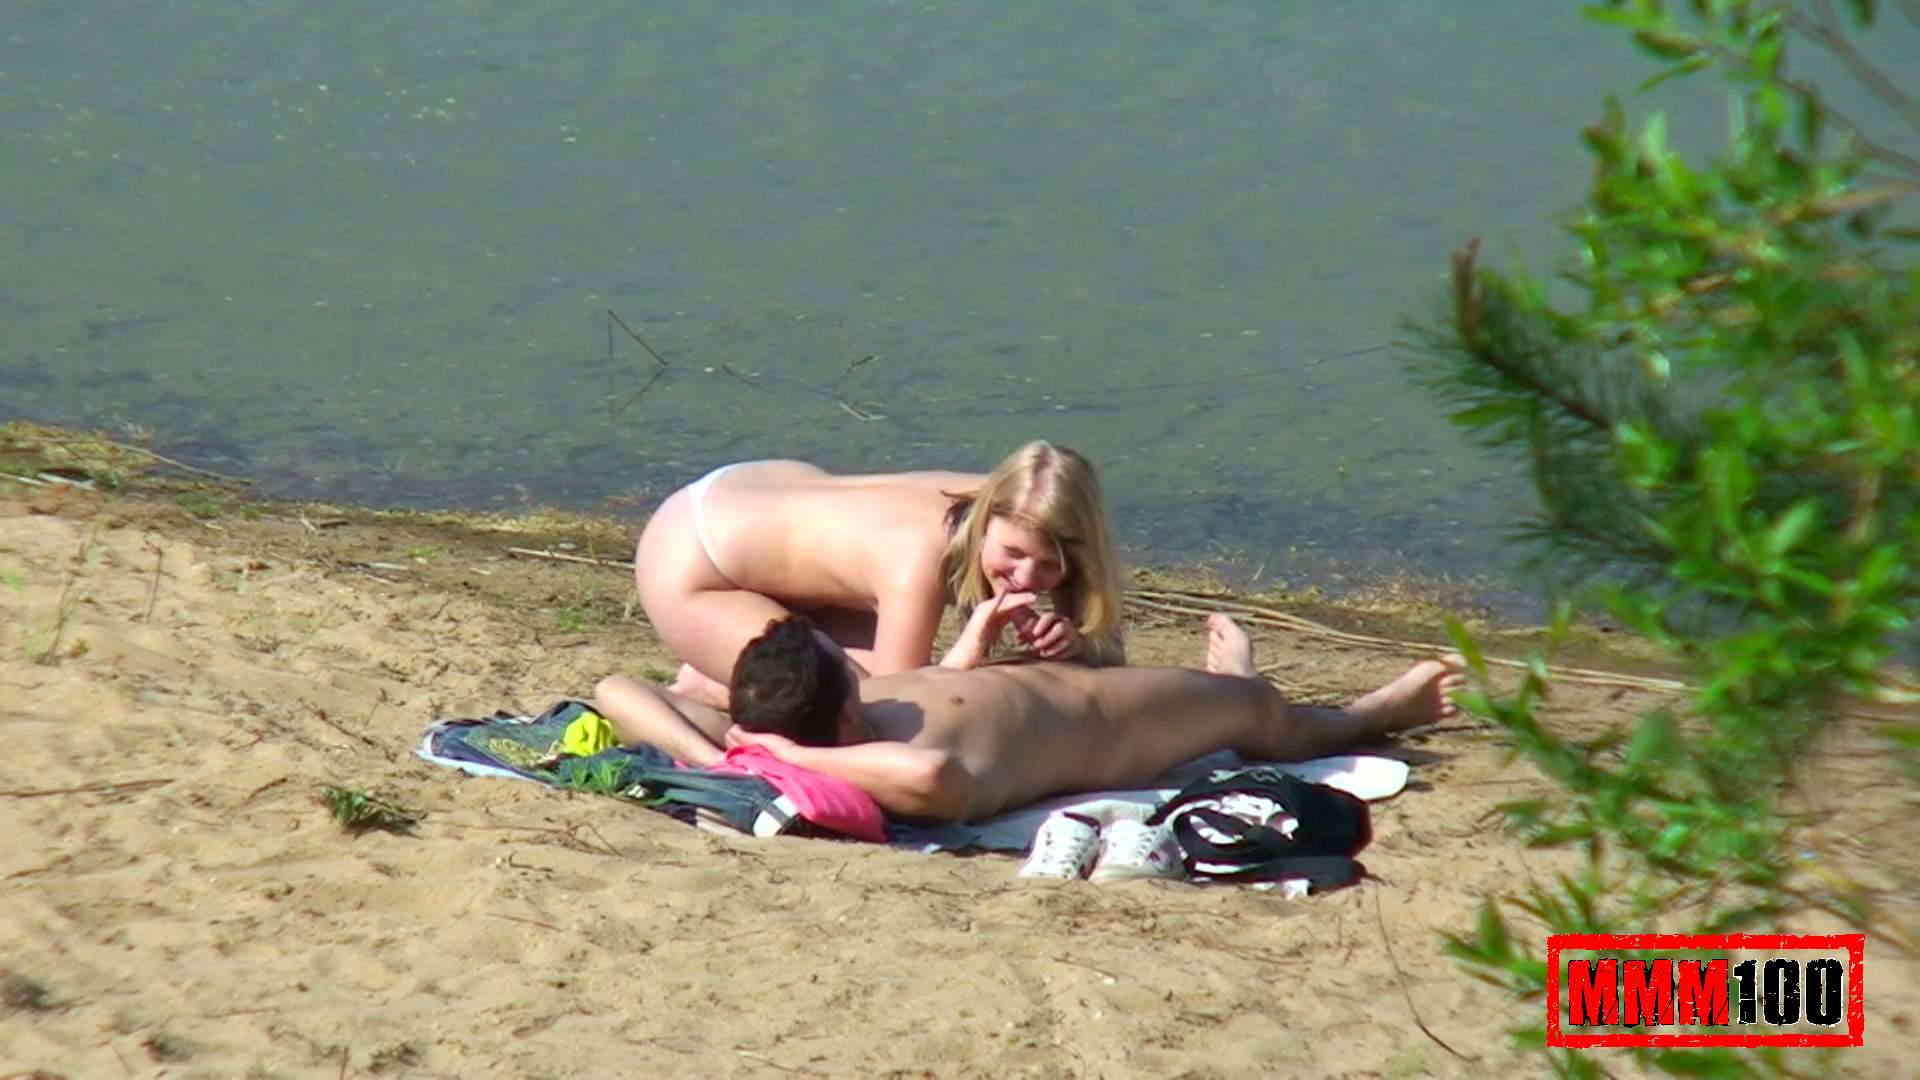 Something sex at the beach spying that